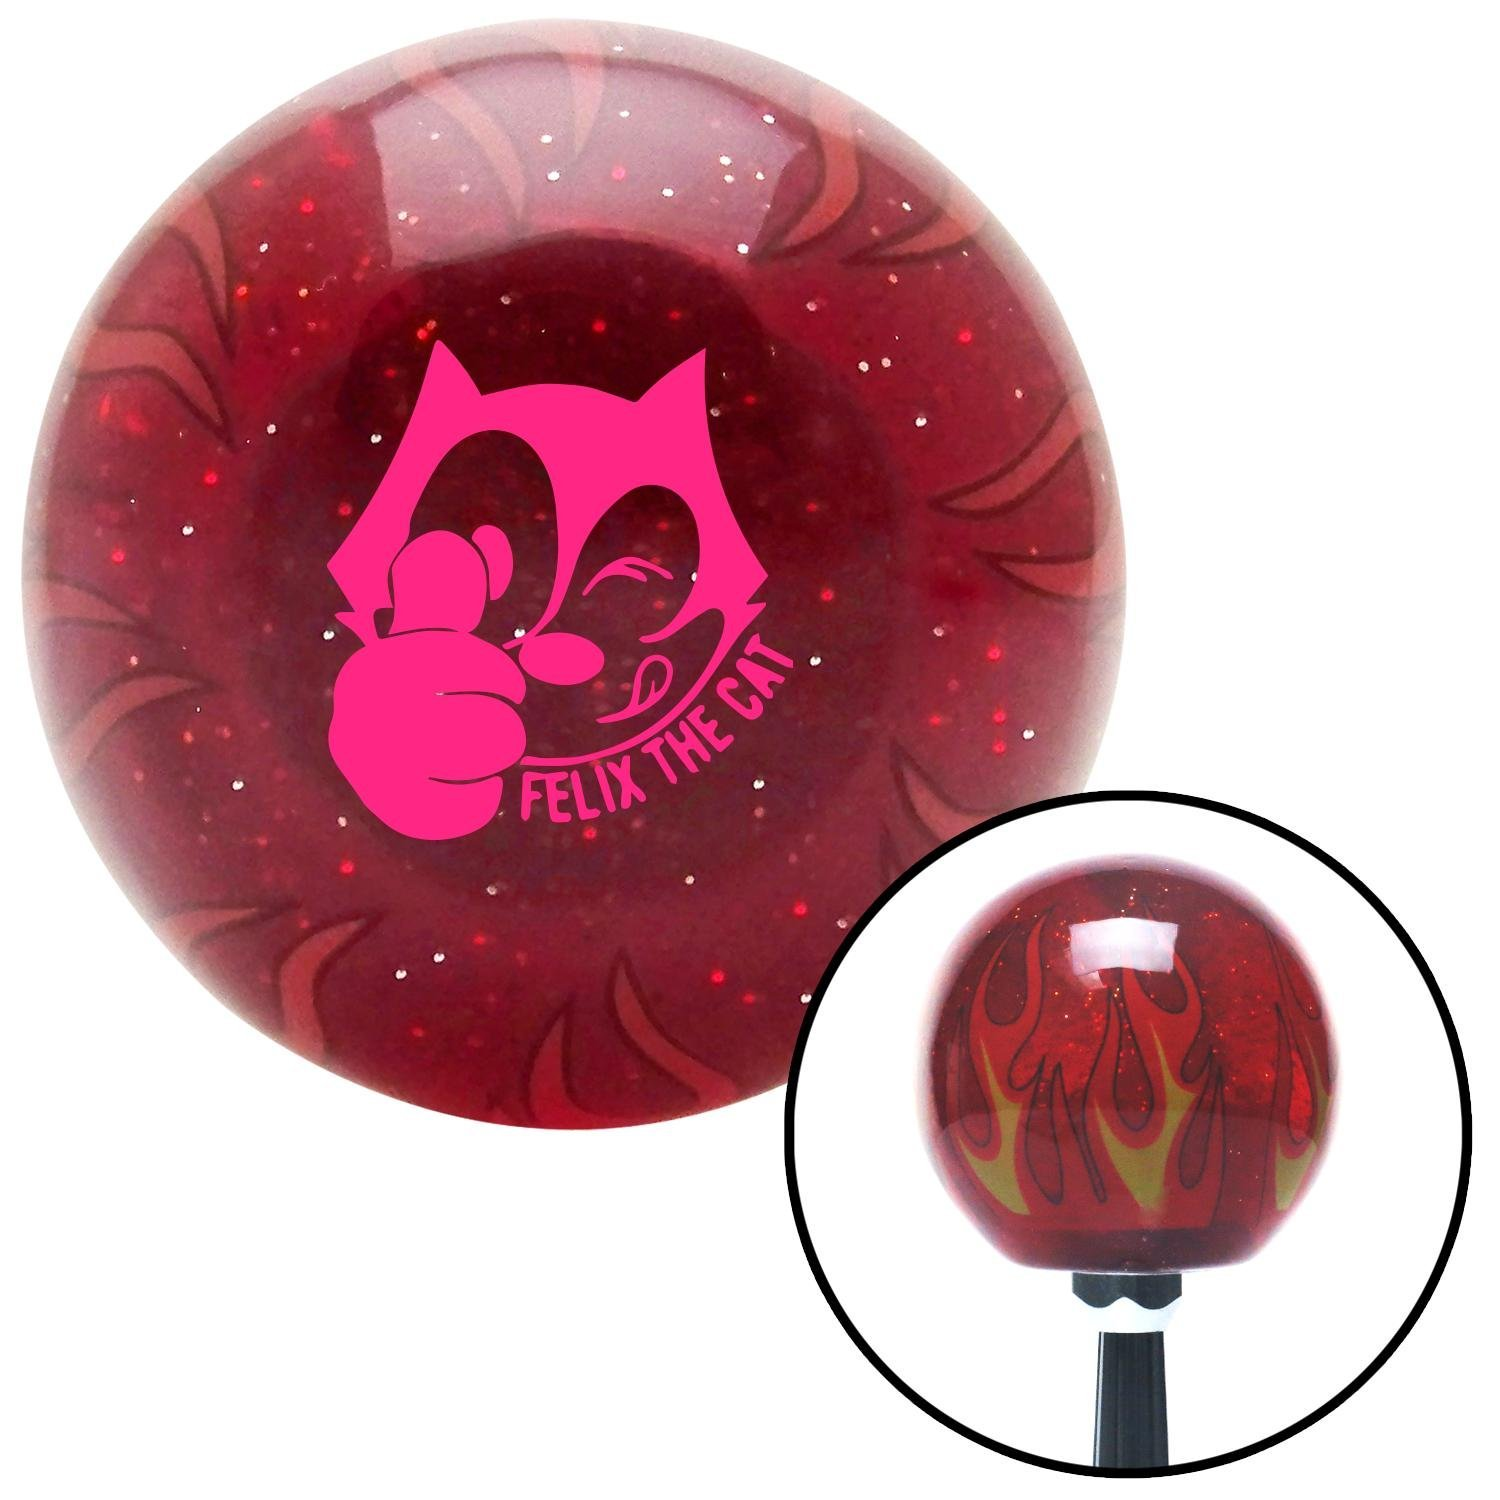 Pink Felix The Cat Thumbs Up American Shifter 242349 Red Flame Metal Flake Shift Knob with M16 x 1.5 Insert